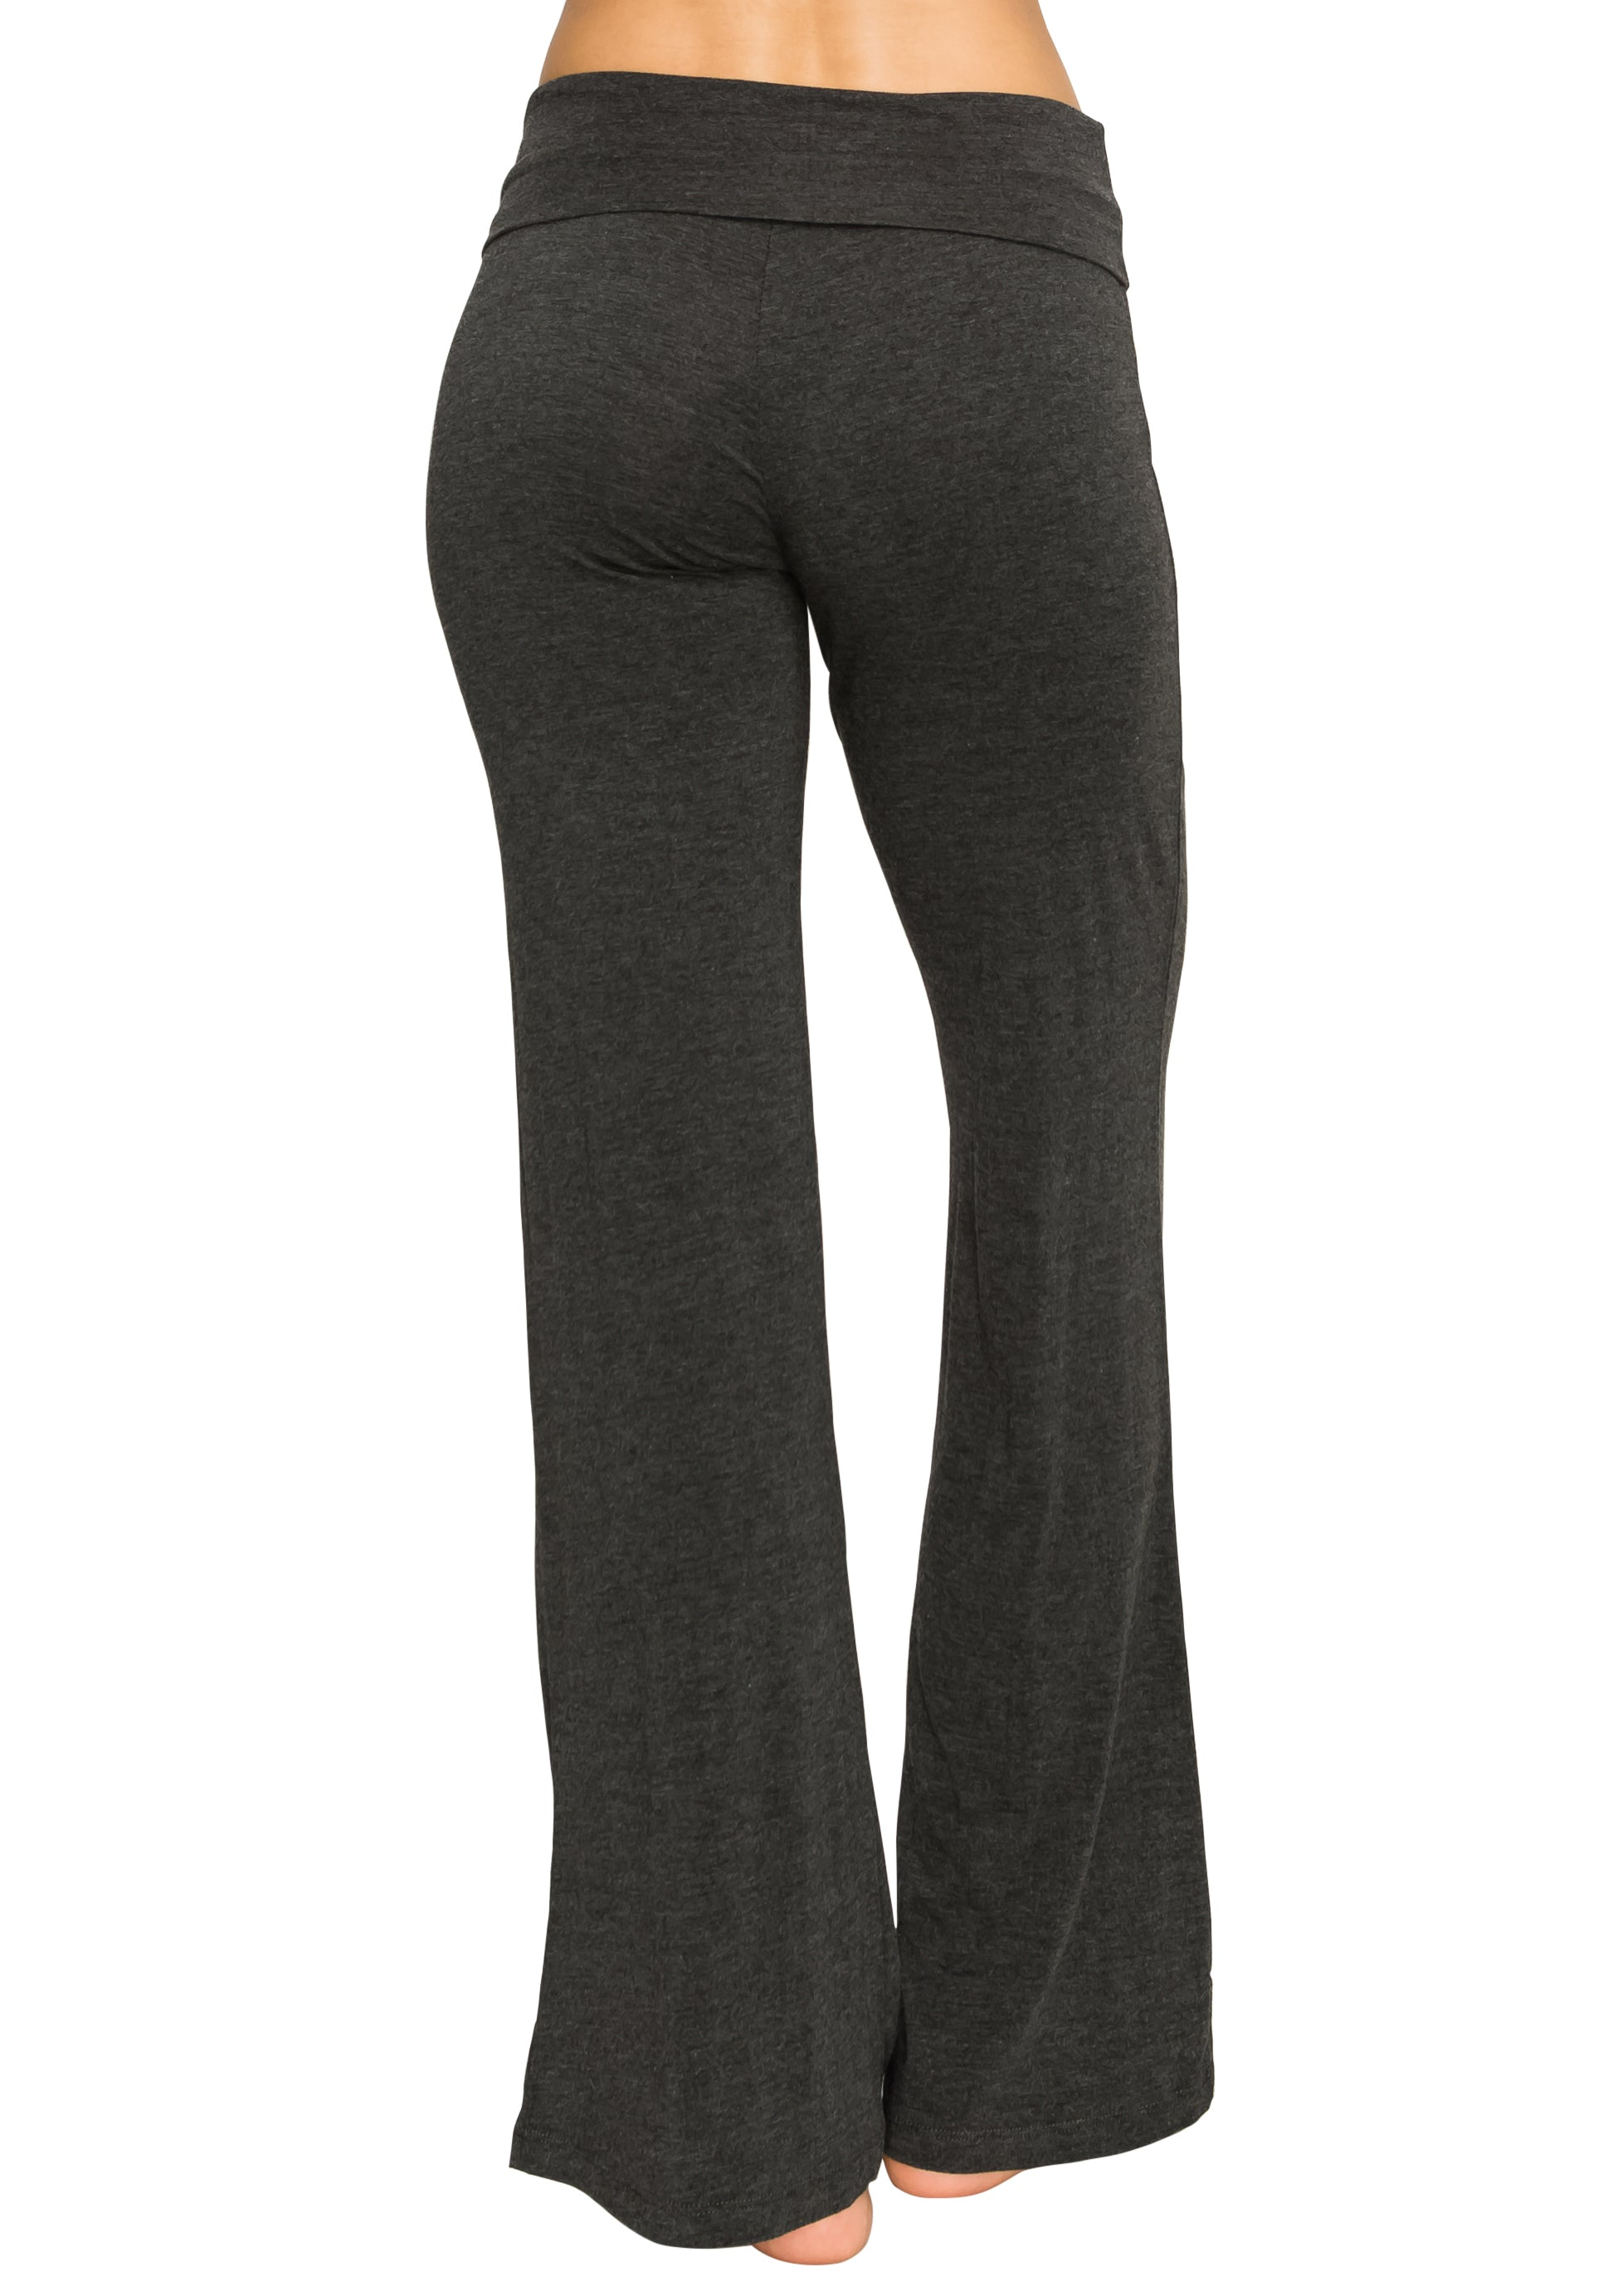 H. Charcoal Foldover Yoga Pants - Poplooks